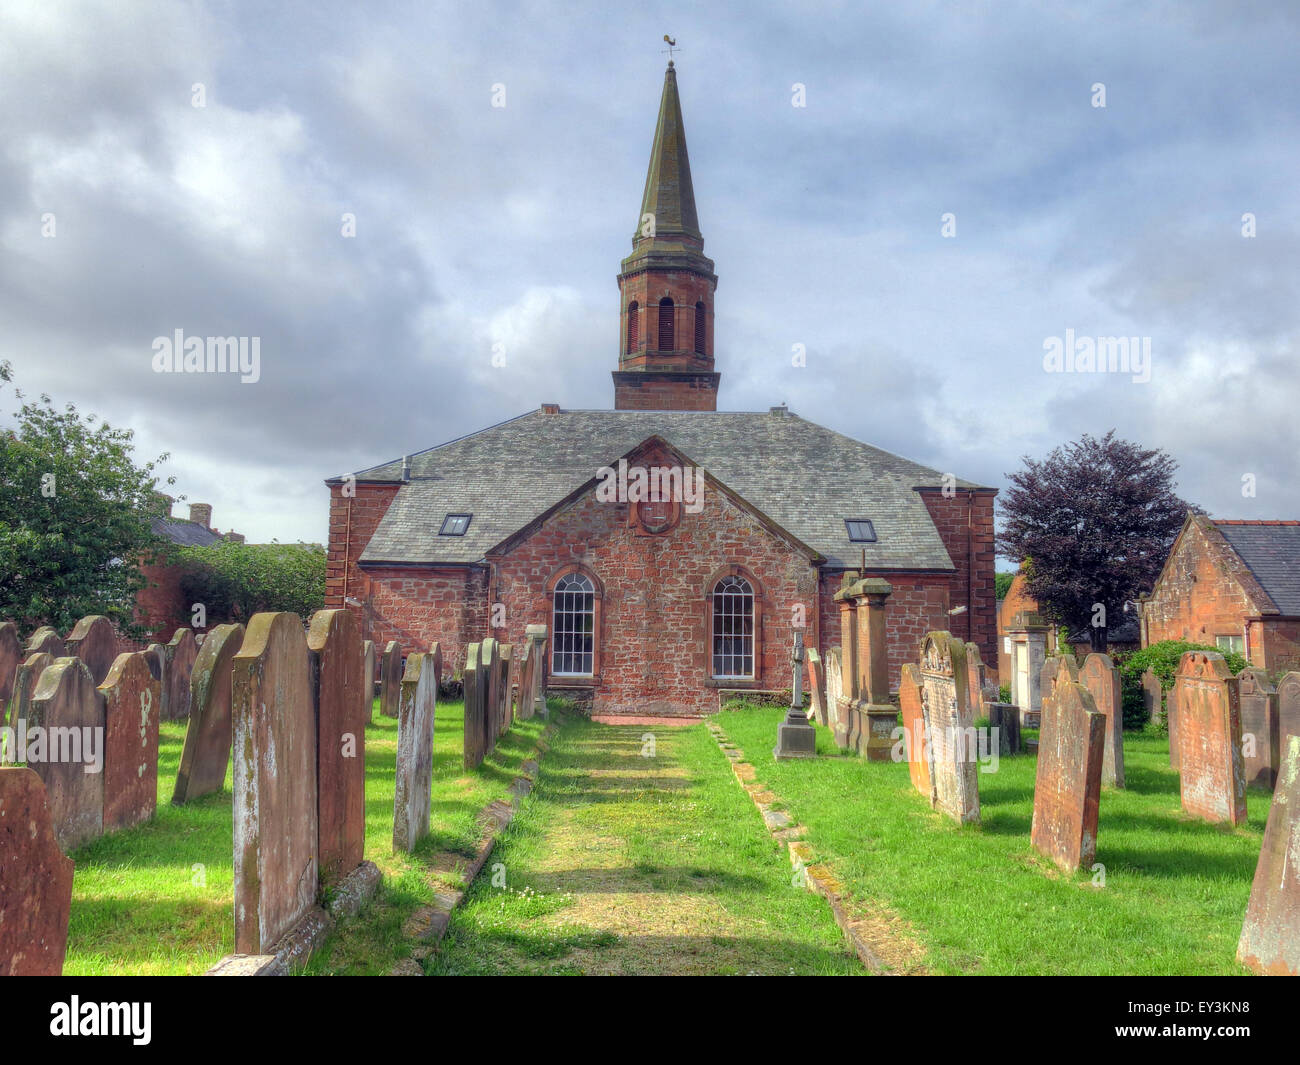 Annan Old Parish Church of Scotland - Stock Image